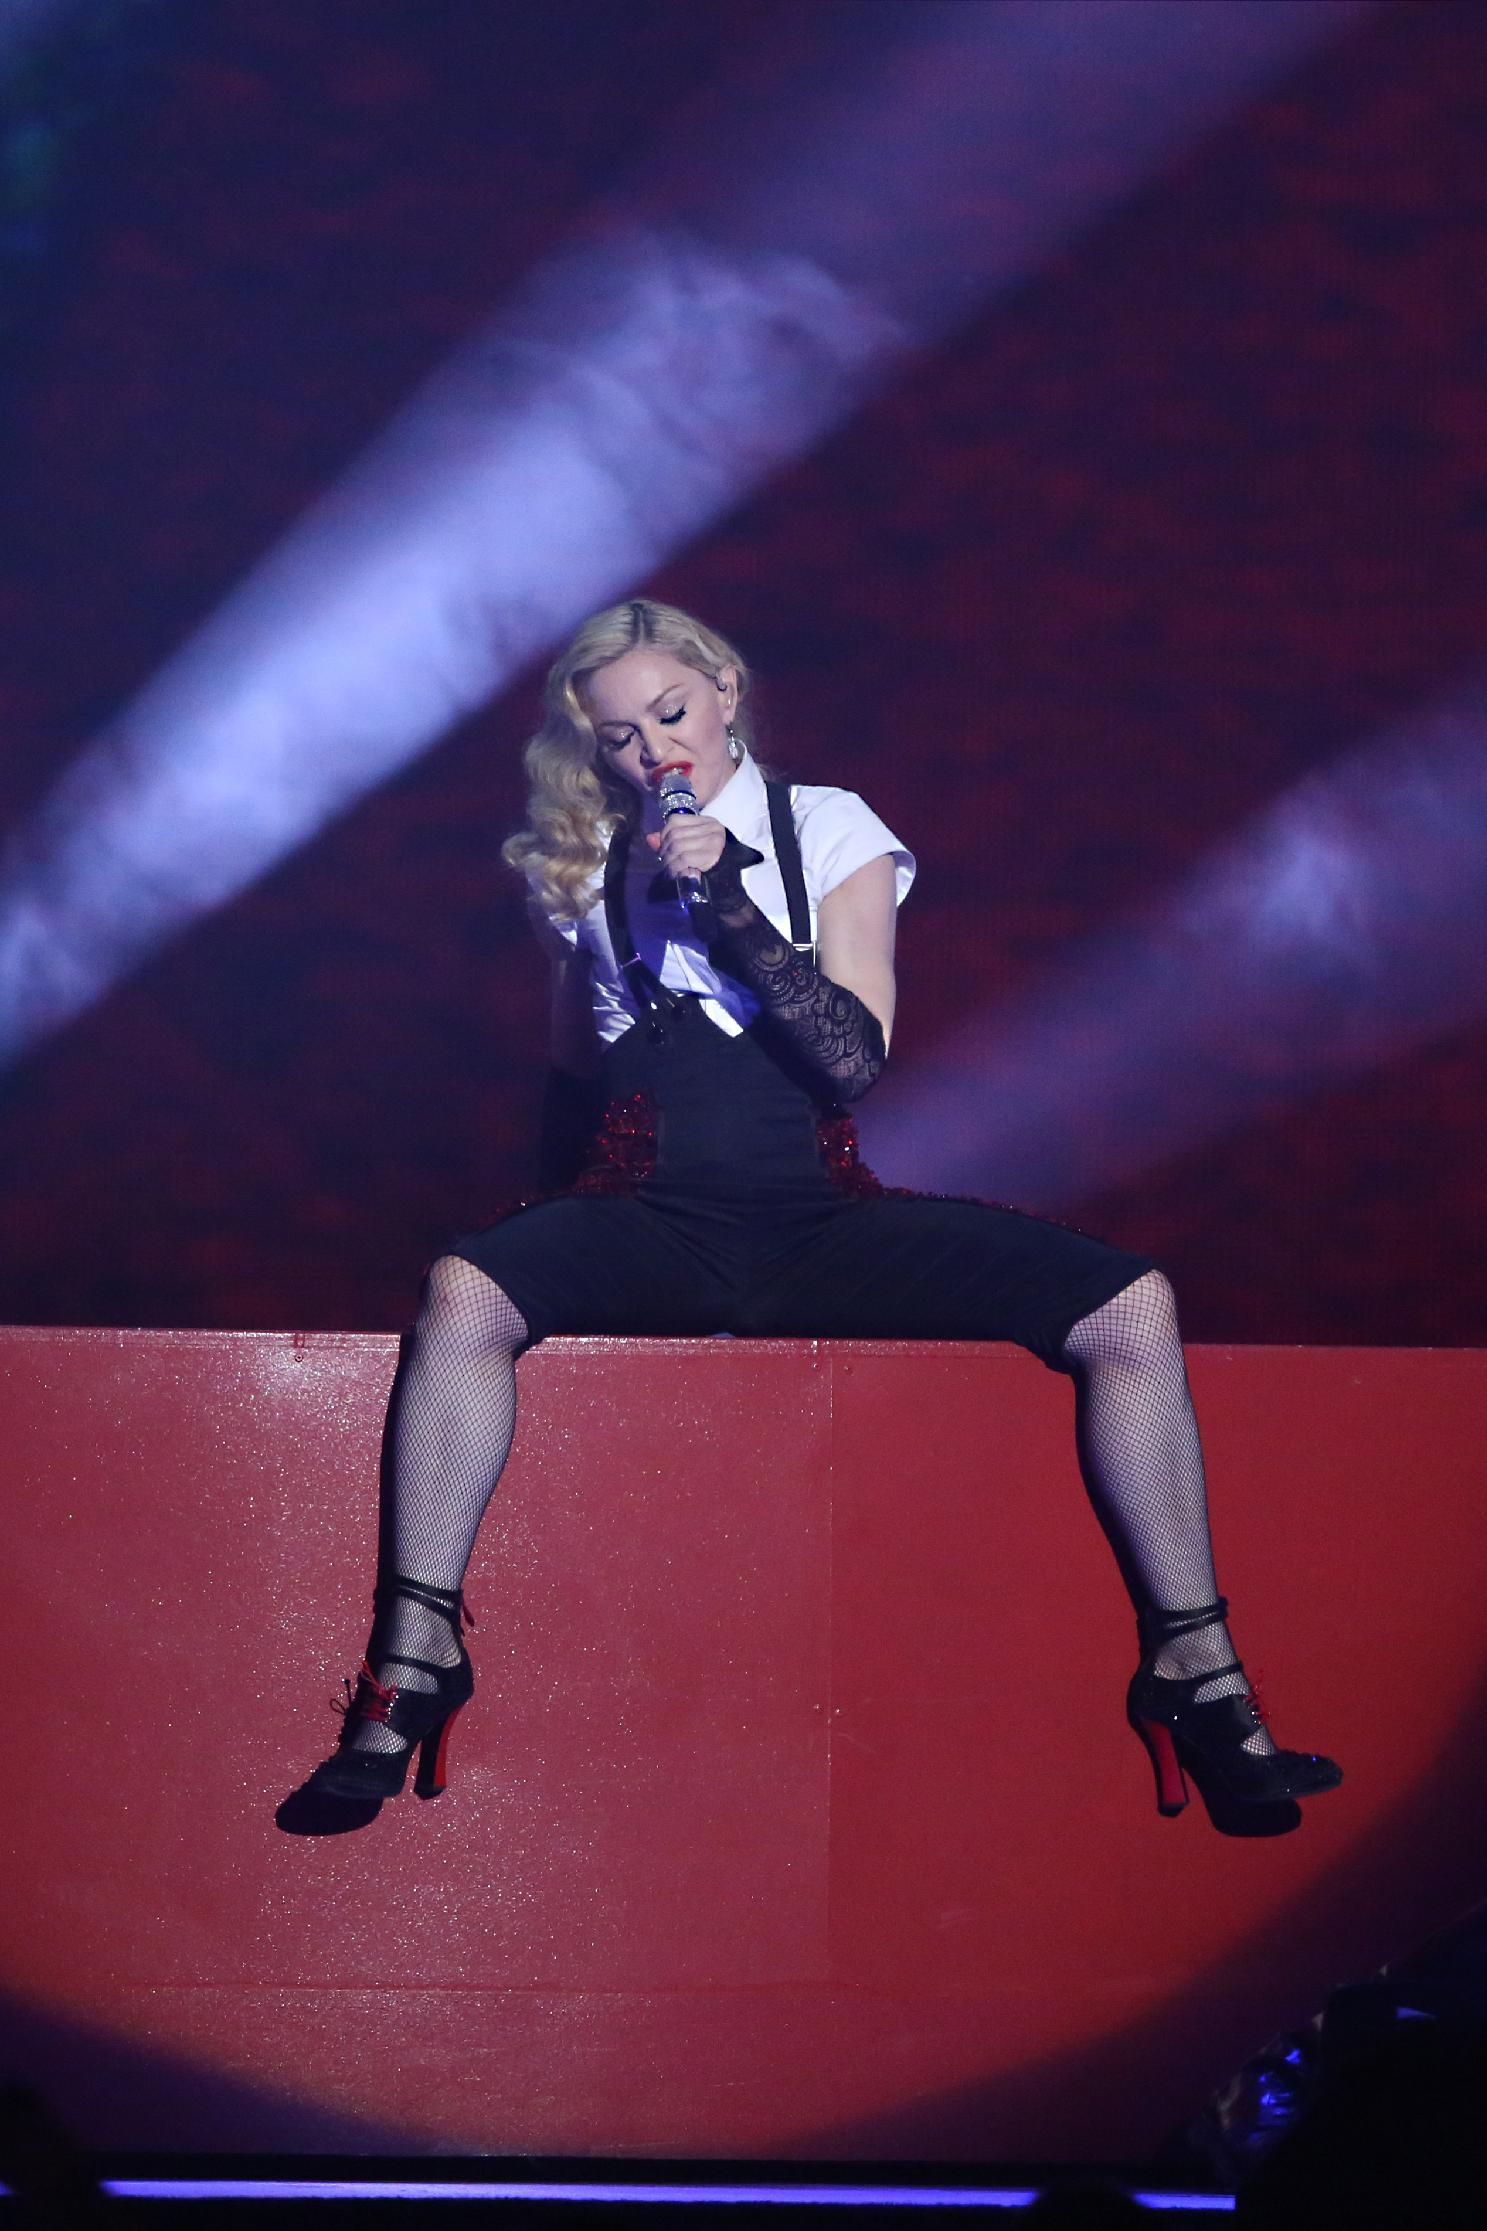 Madonna denounces rise of far right in Europe